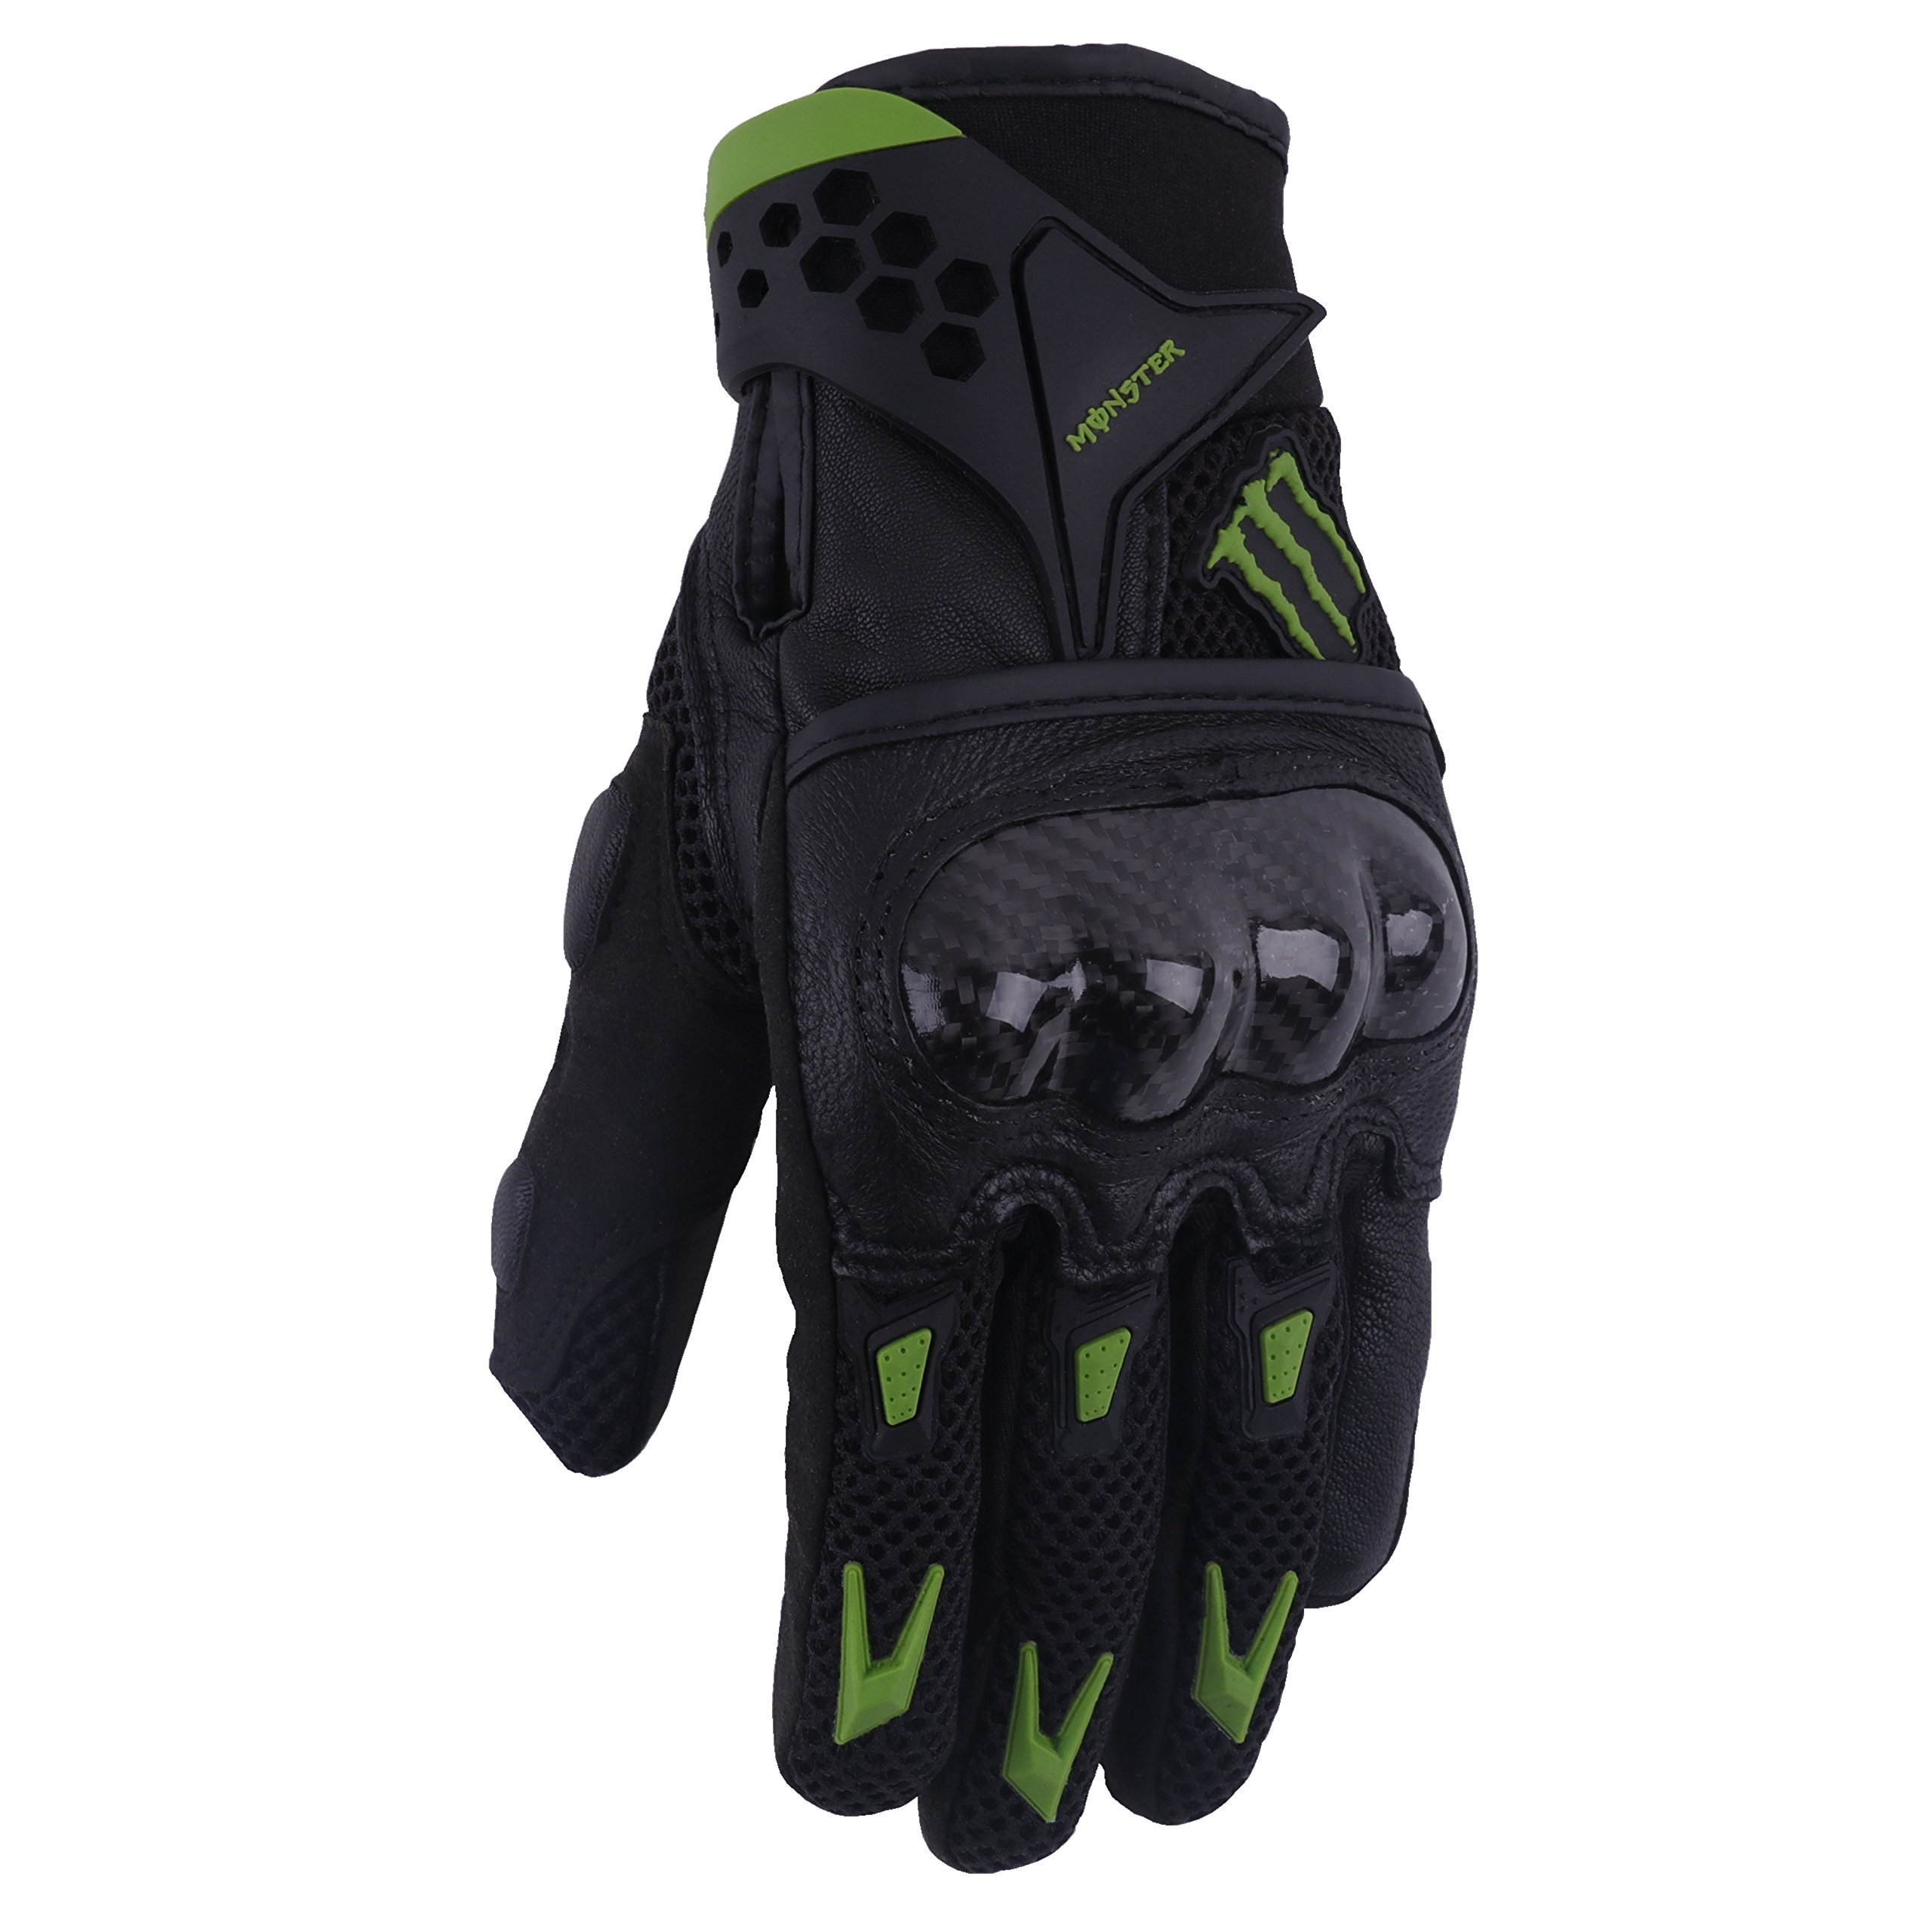 A Pair of Pro-Biker Carbon Fiber Leather Bicycle Motorcycle Motorbike Powersports Racing Gloves (L, Green)